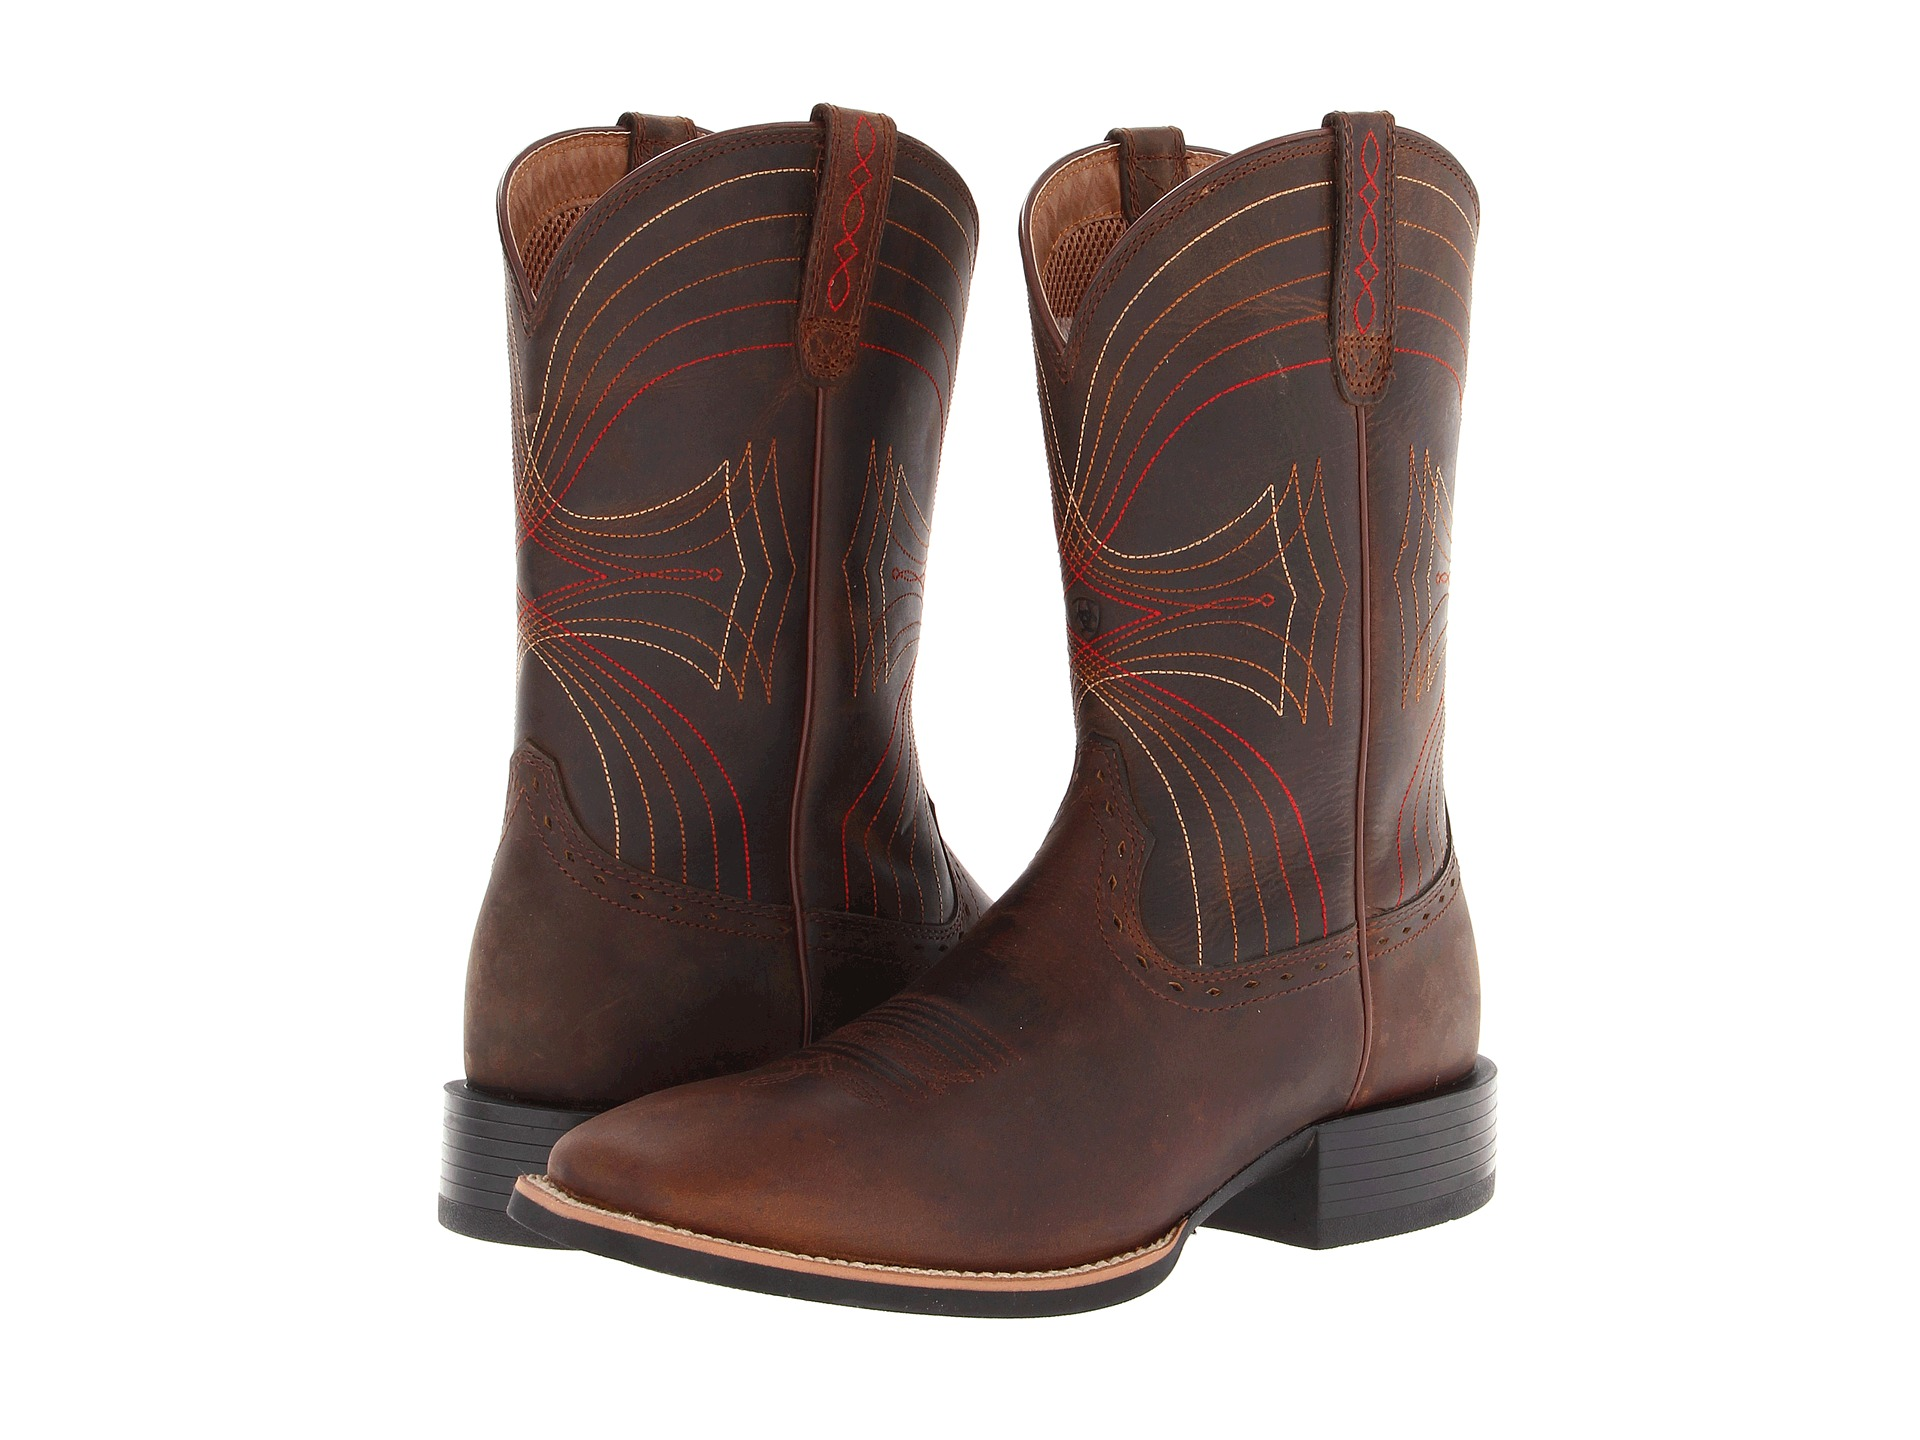 Ariat Sport Wide Square Toe - Zappos.com Free Shipping BOTH Ways